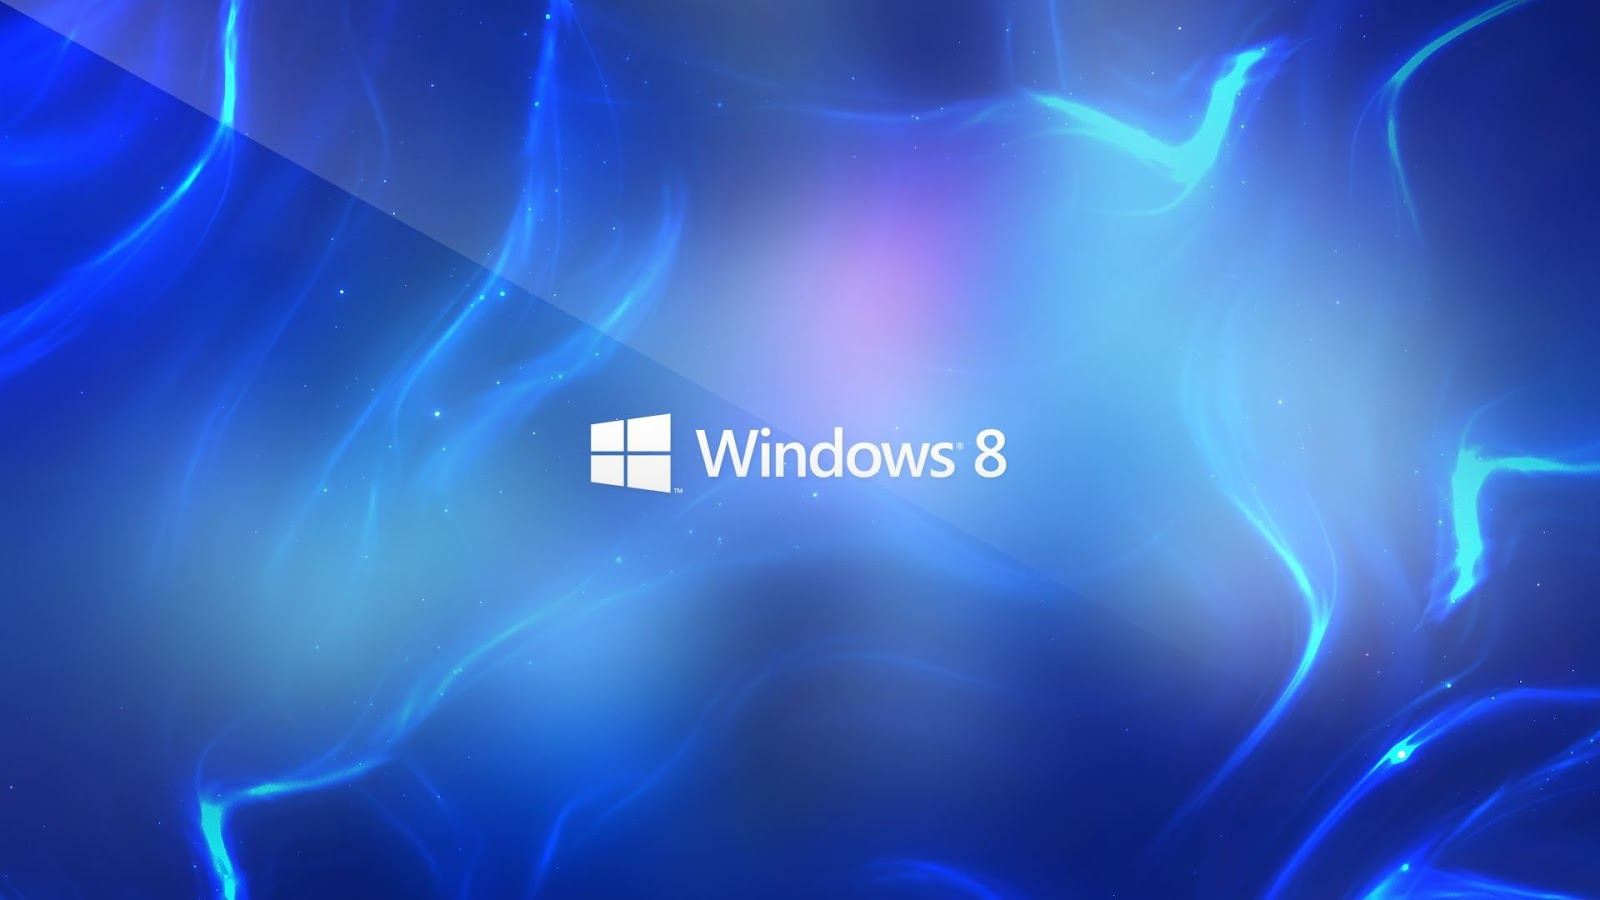 Picuture: Picture For Windos 8 Wallpaper HD